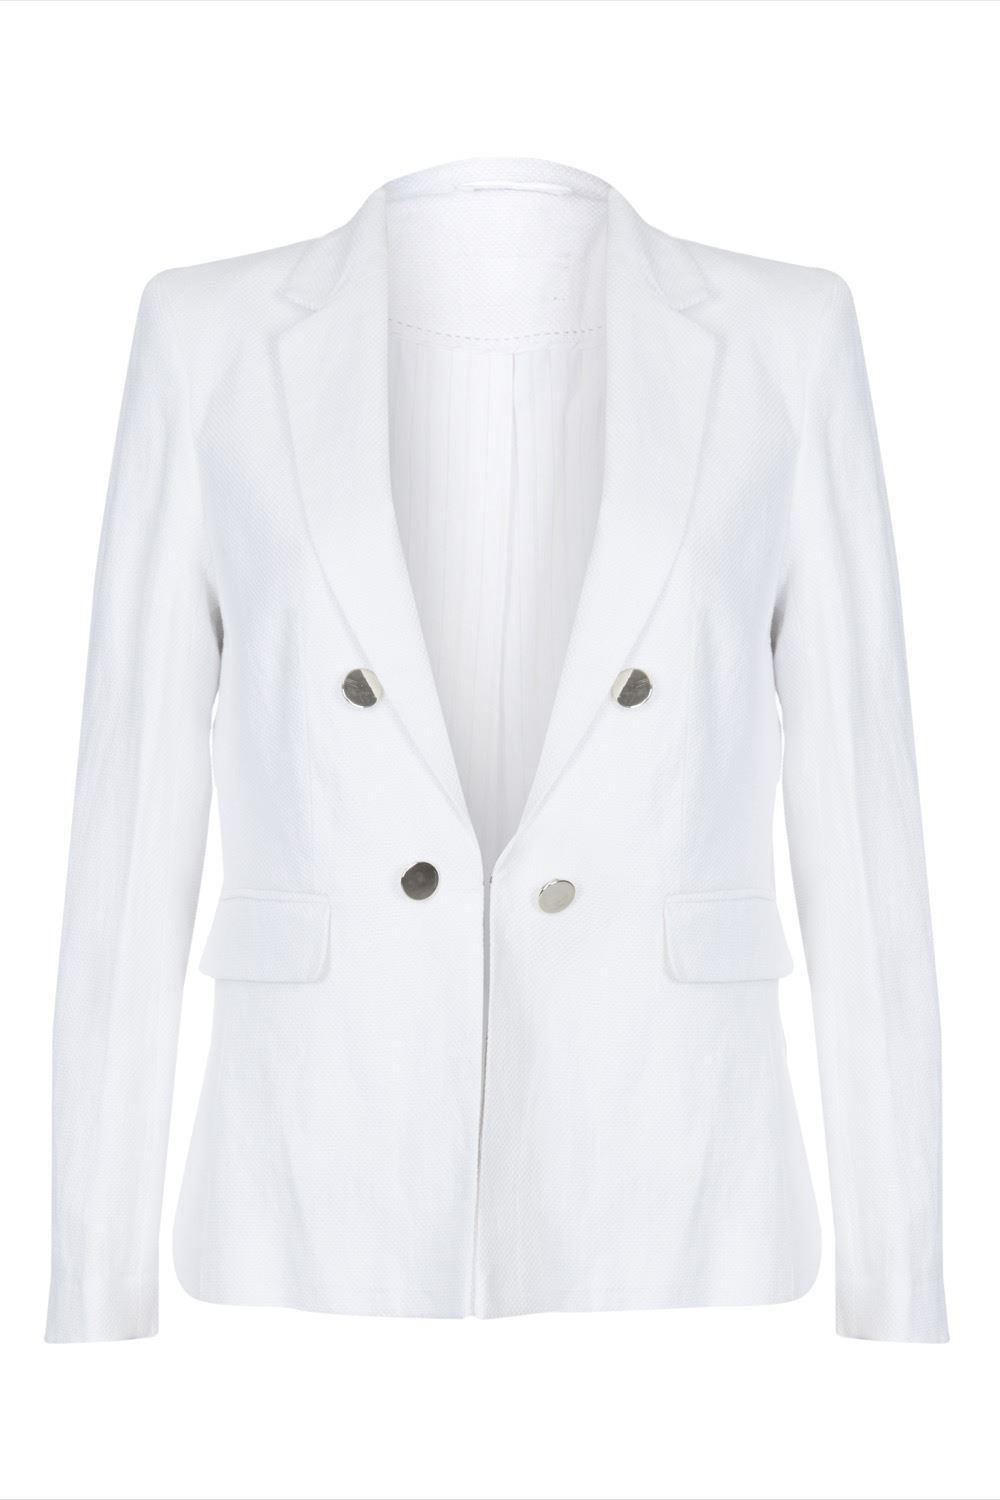 Anastasia Cream  Linen Summer Blazer Jacket